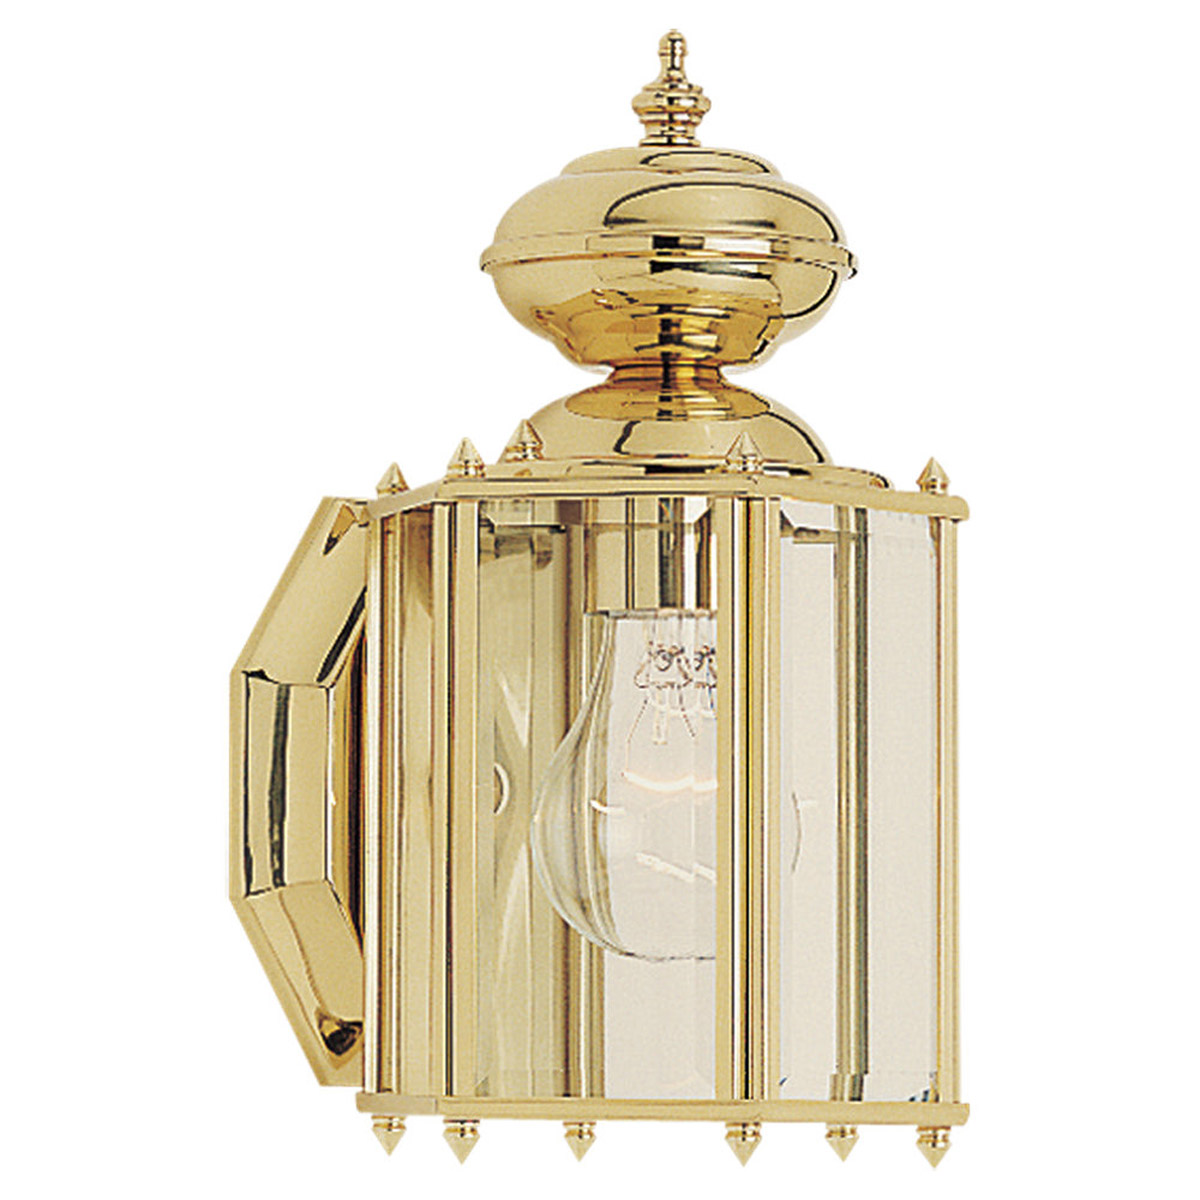 Sea Gull Lighting Classico 1 Light Outdoor Wall Lantern in Polished Brass 8507-02